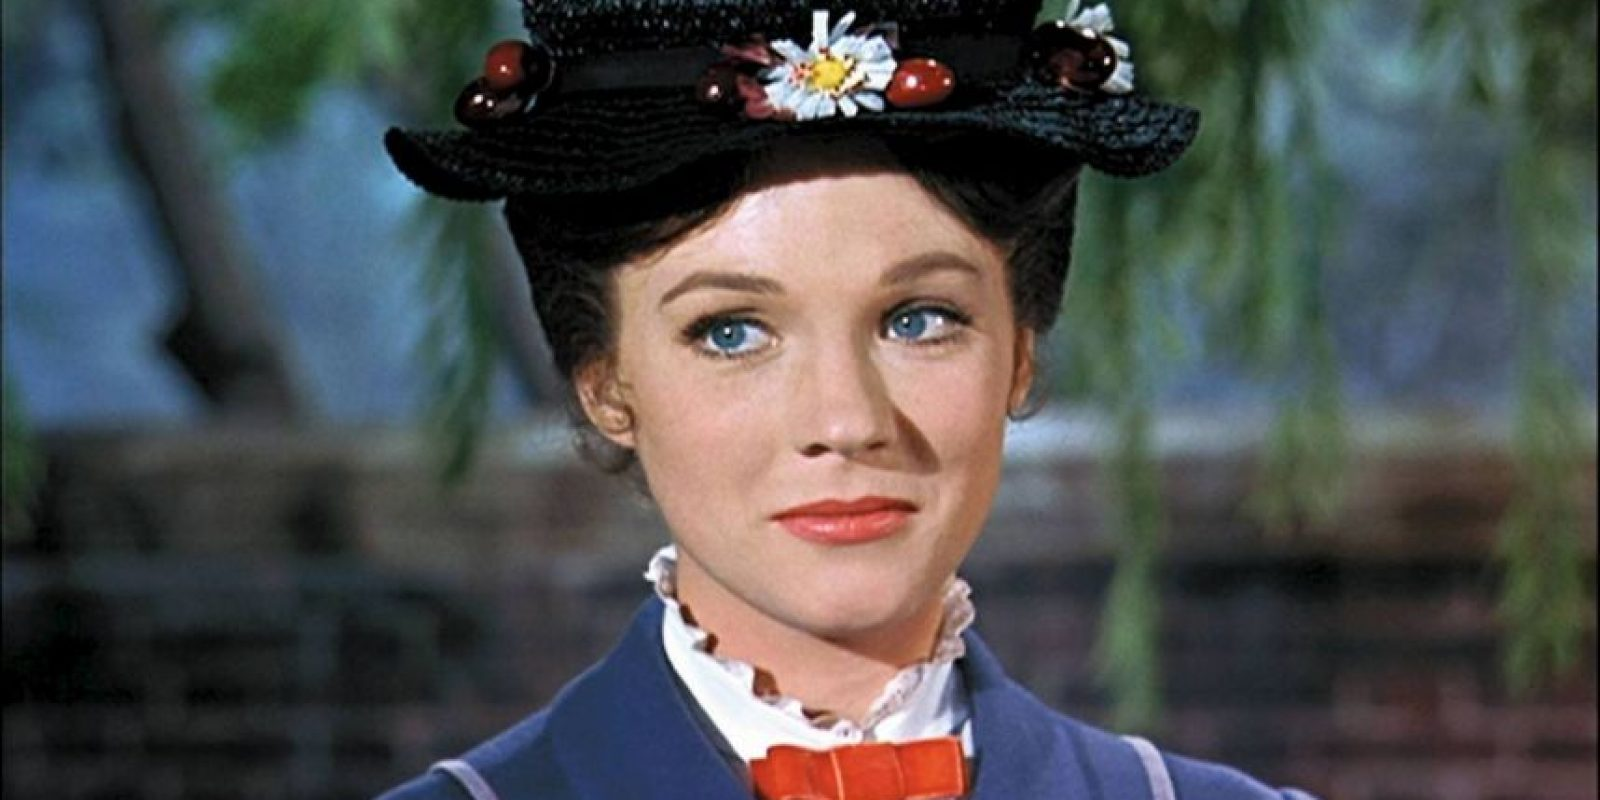 Foto: Facebook/Mary Poppins